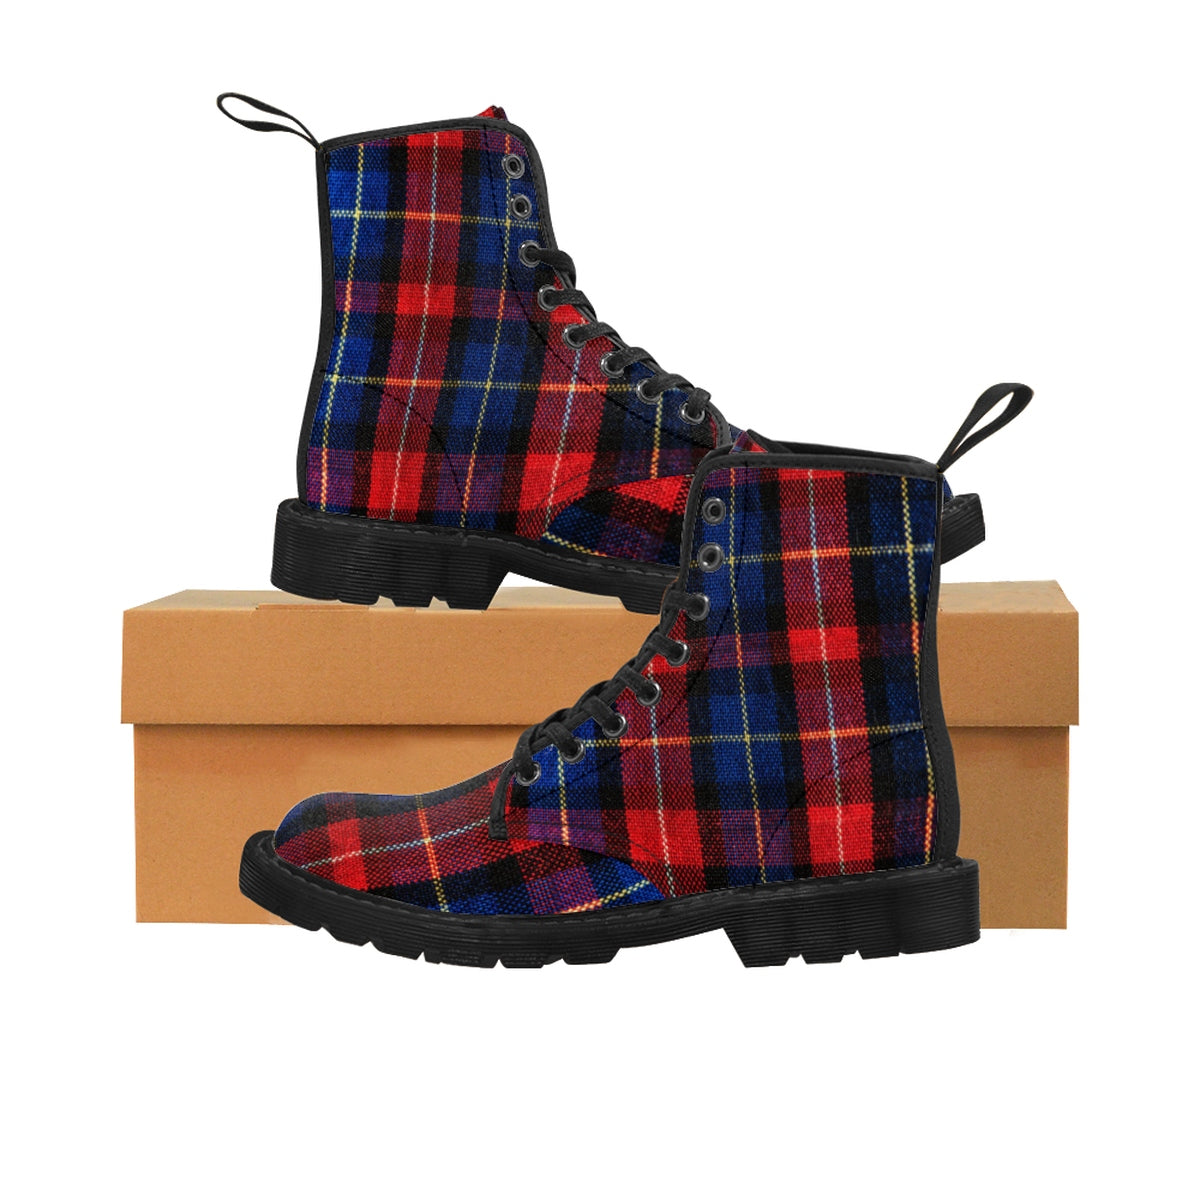 Comfortable Red Plaid Tartan Print Fashion Men's Winter Boots (US Size: 7-10.5)-Men's Boots-Black-US 9-Heidi Kimura Art LLC Red Plaid Men's Boots, Comfortable Red Plaid Tartan Print Fashion Men's Winter Boots, Anti-Rain + Water (US Size: 7-10.5)